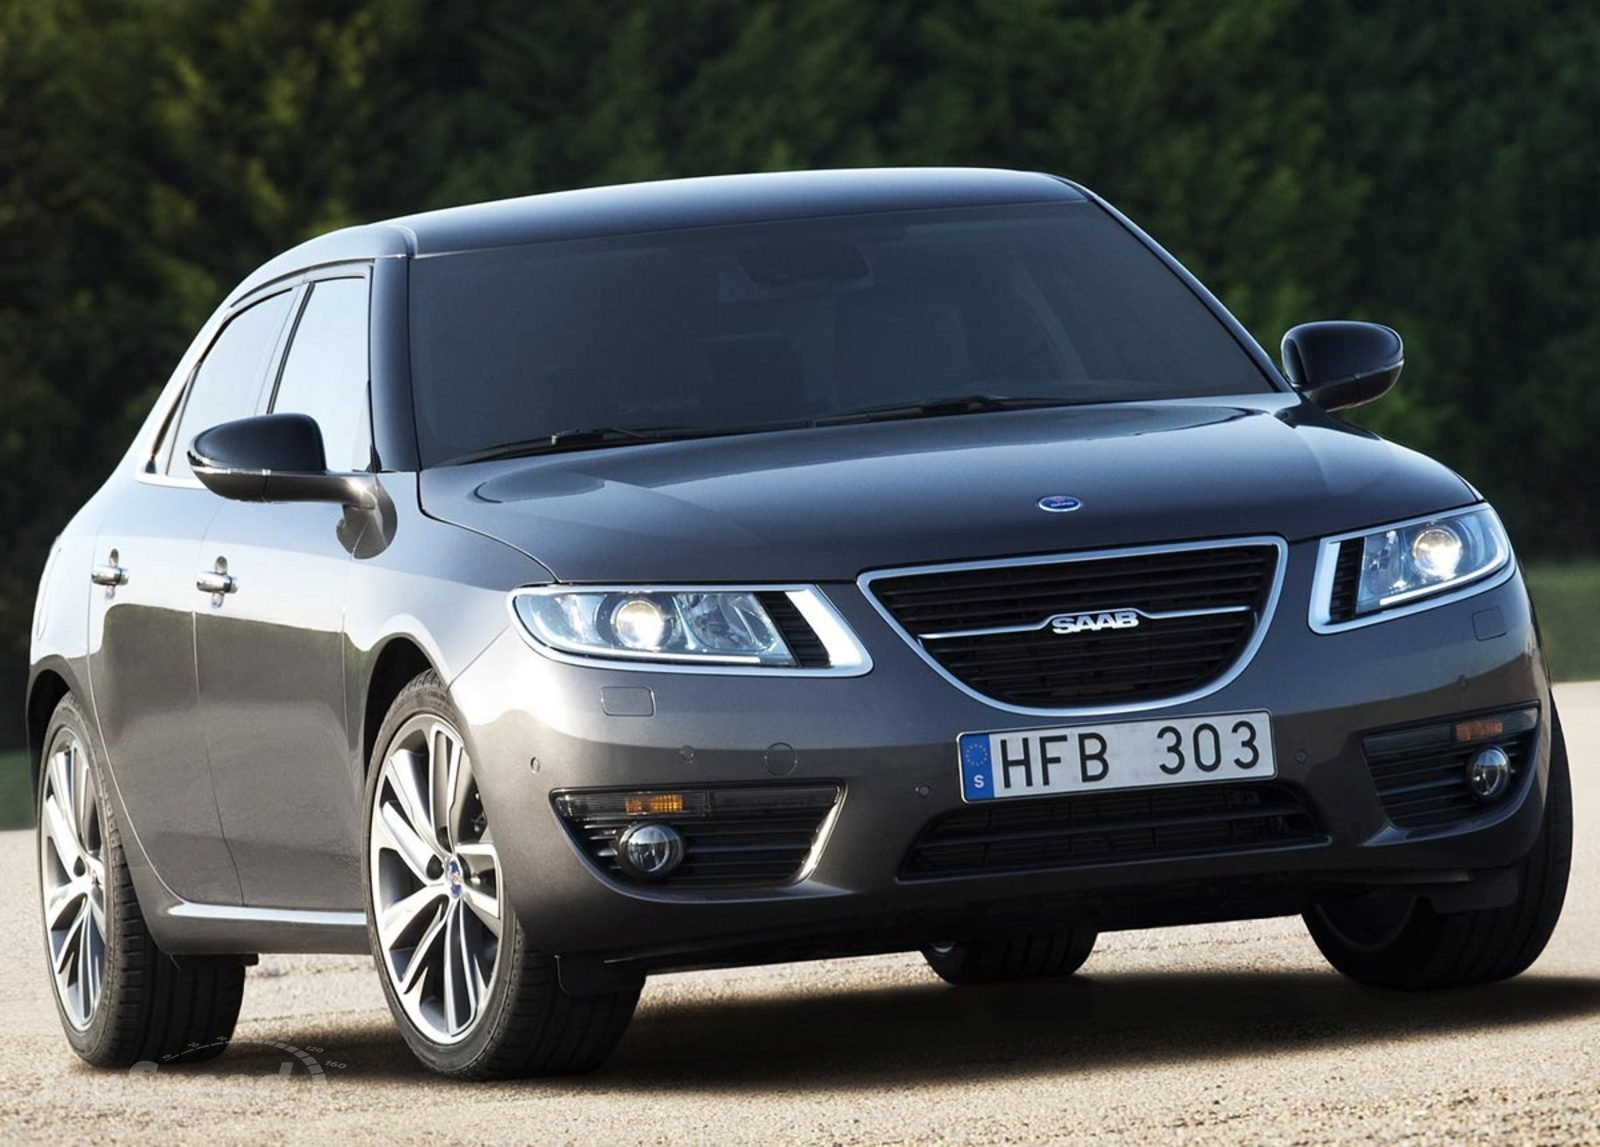 2011 saab 9 5 2 0t turbo4 by hirsch performance review. Black Bedroom Furniture Sets. Home Design Ideas